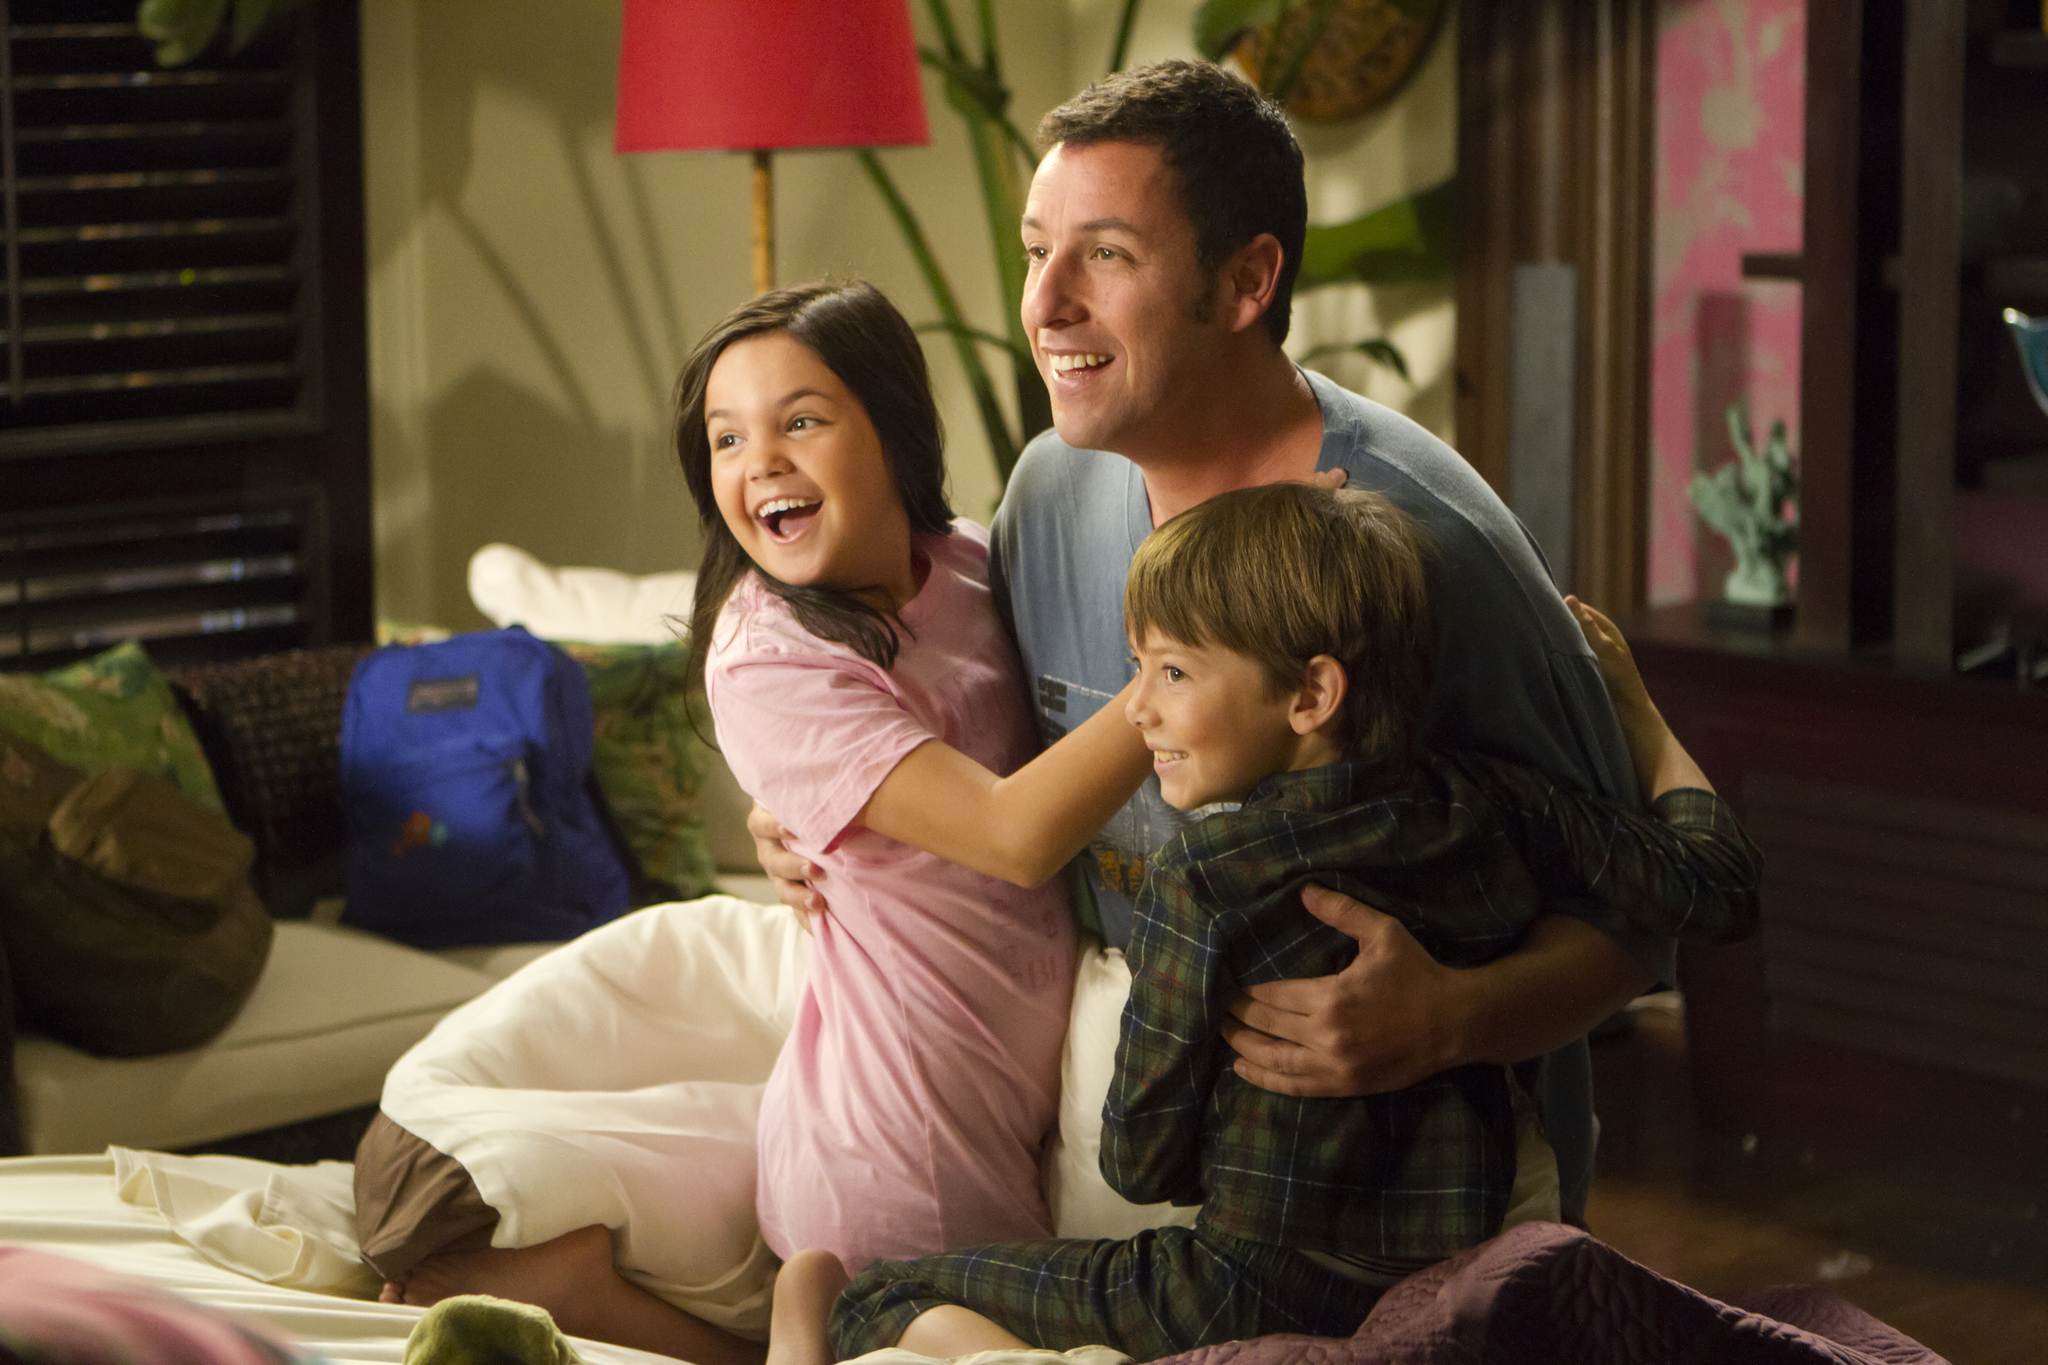 Adam Sandler, Bailee Madison, and Griffin Gluck in Just Go with It (2011)